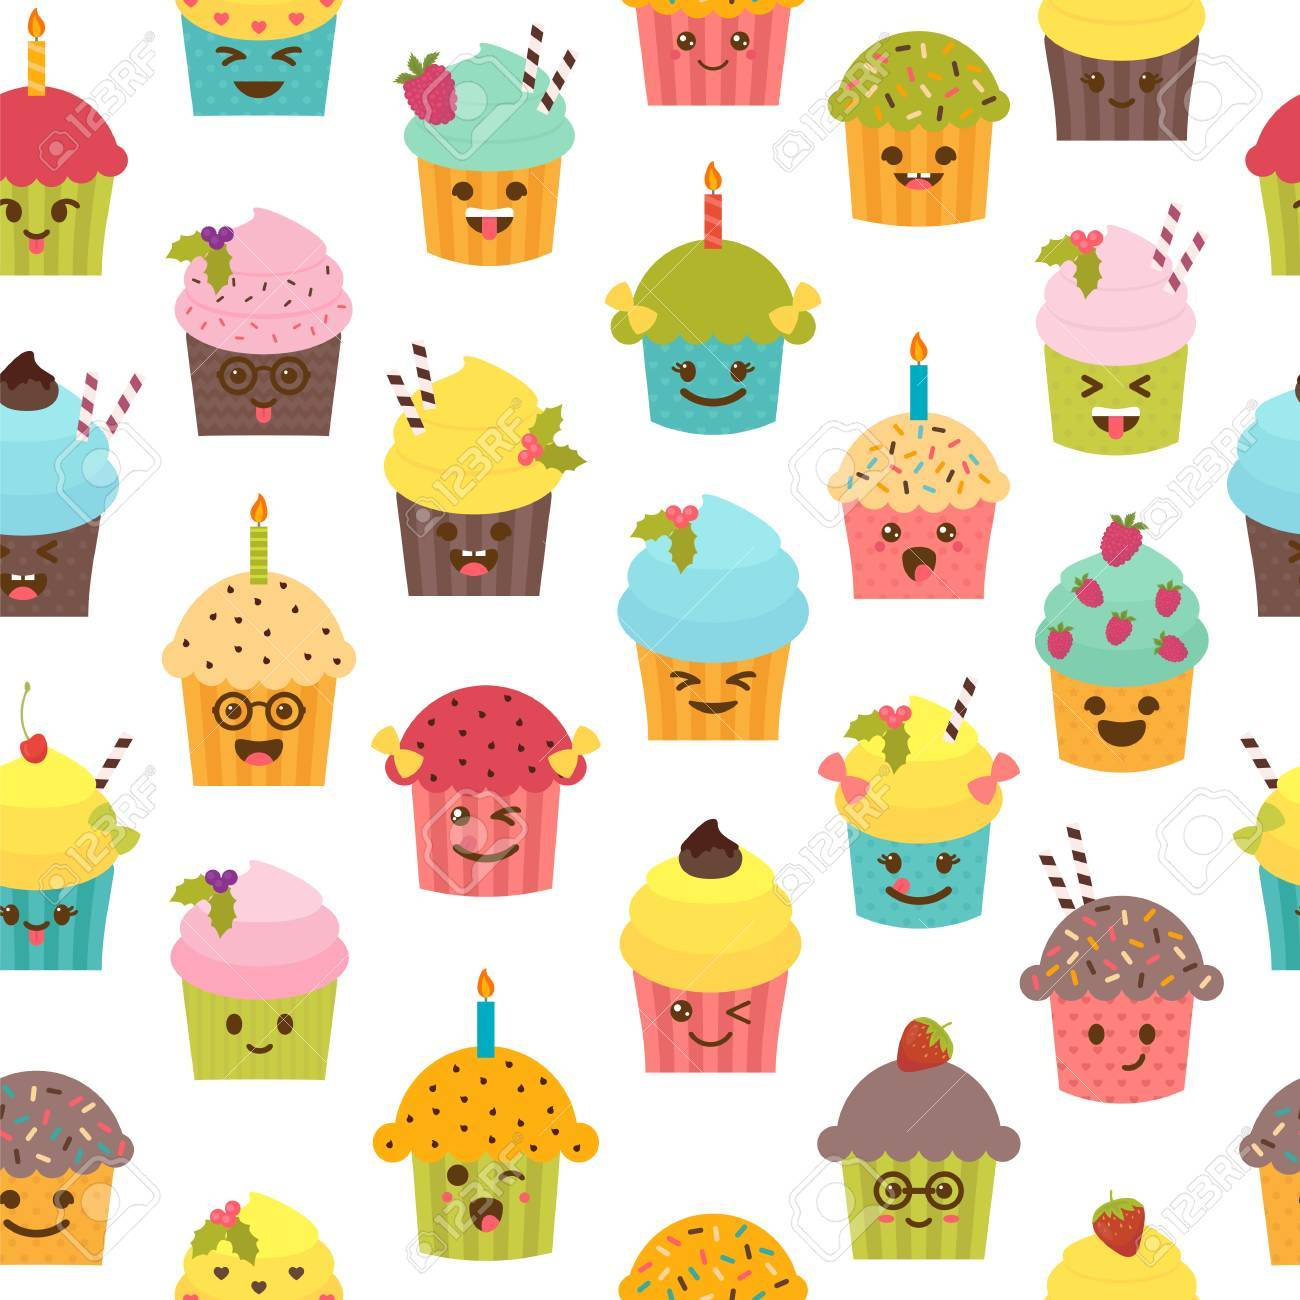 Seamless Pattern With Cupcakes And Muffins Birthday Background Kawaii Cute Cartoon Characters